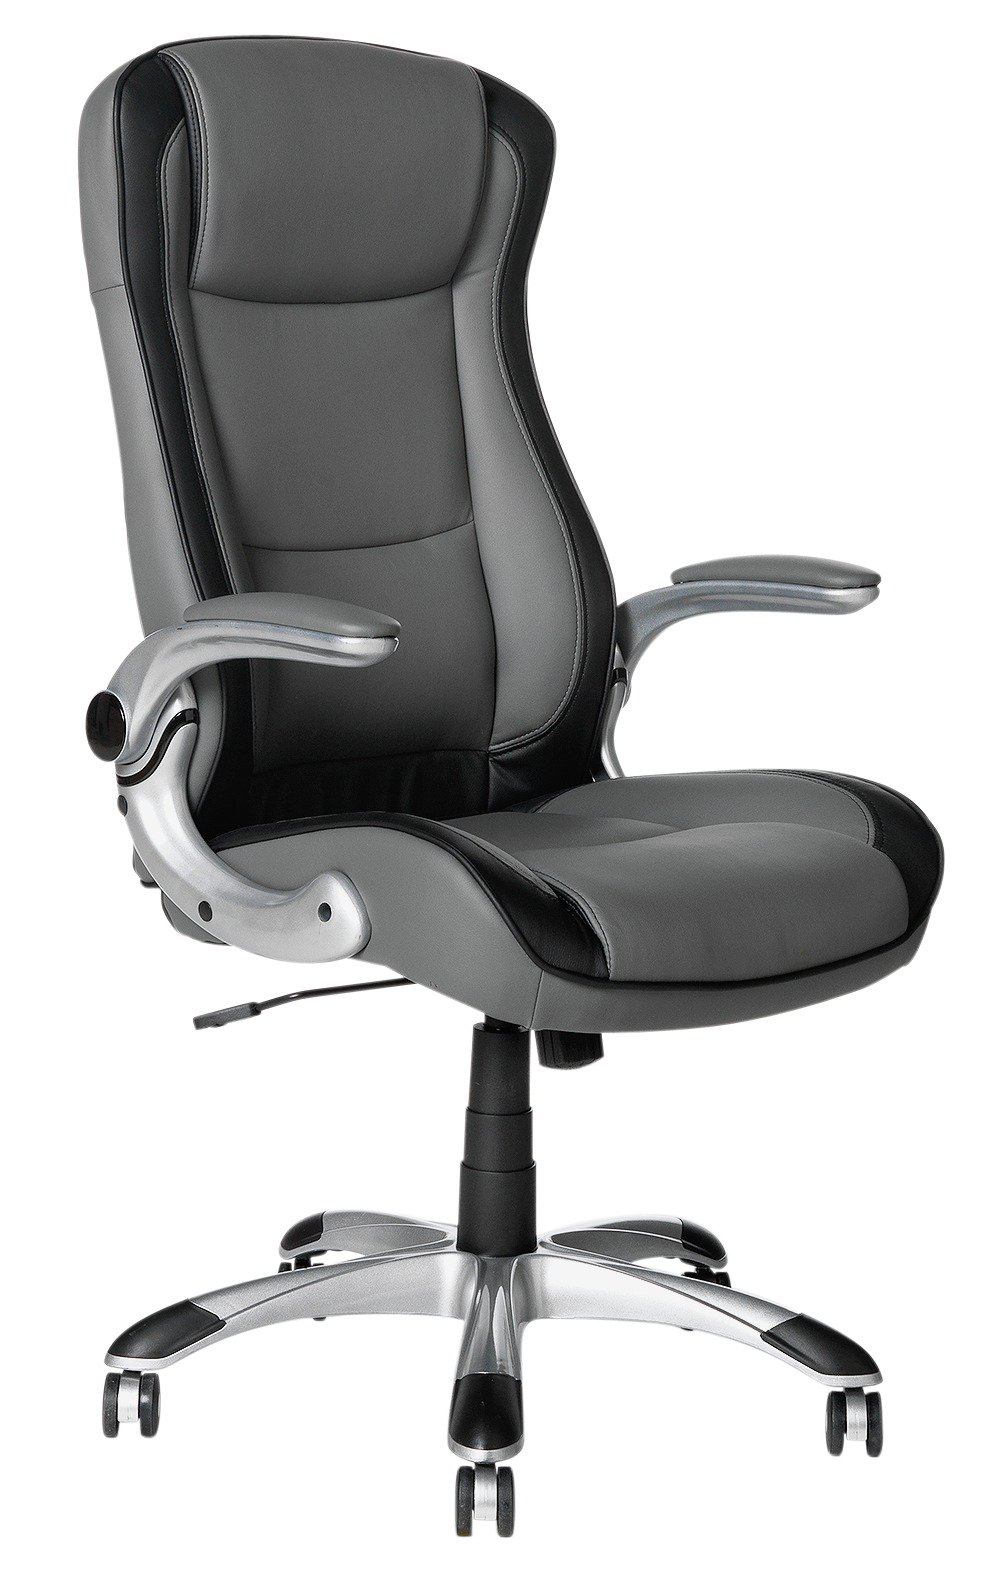 buy home dexter adjustable office chair - grey at argos.co.uk